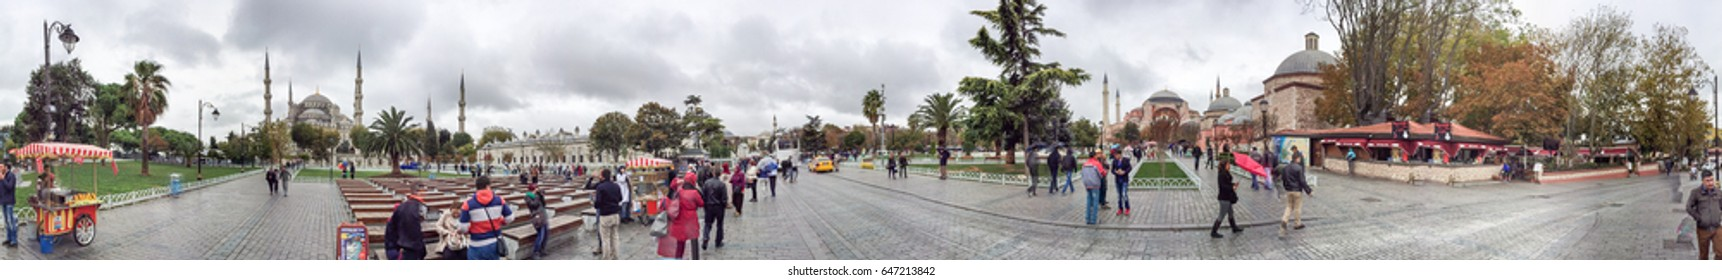 ISTANBUL - OCTOBER 2014: Tourists in Sultanahmet. Istanbul attracts 10 million people annually.